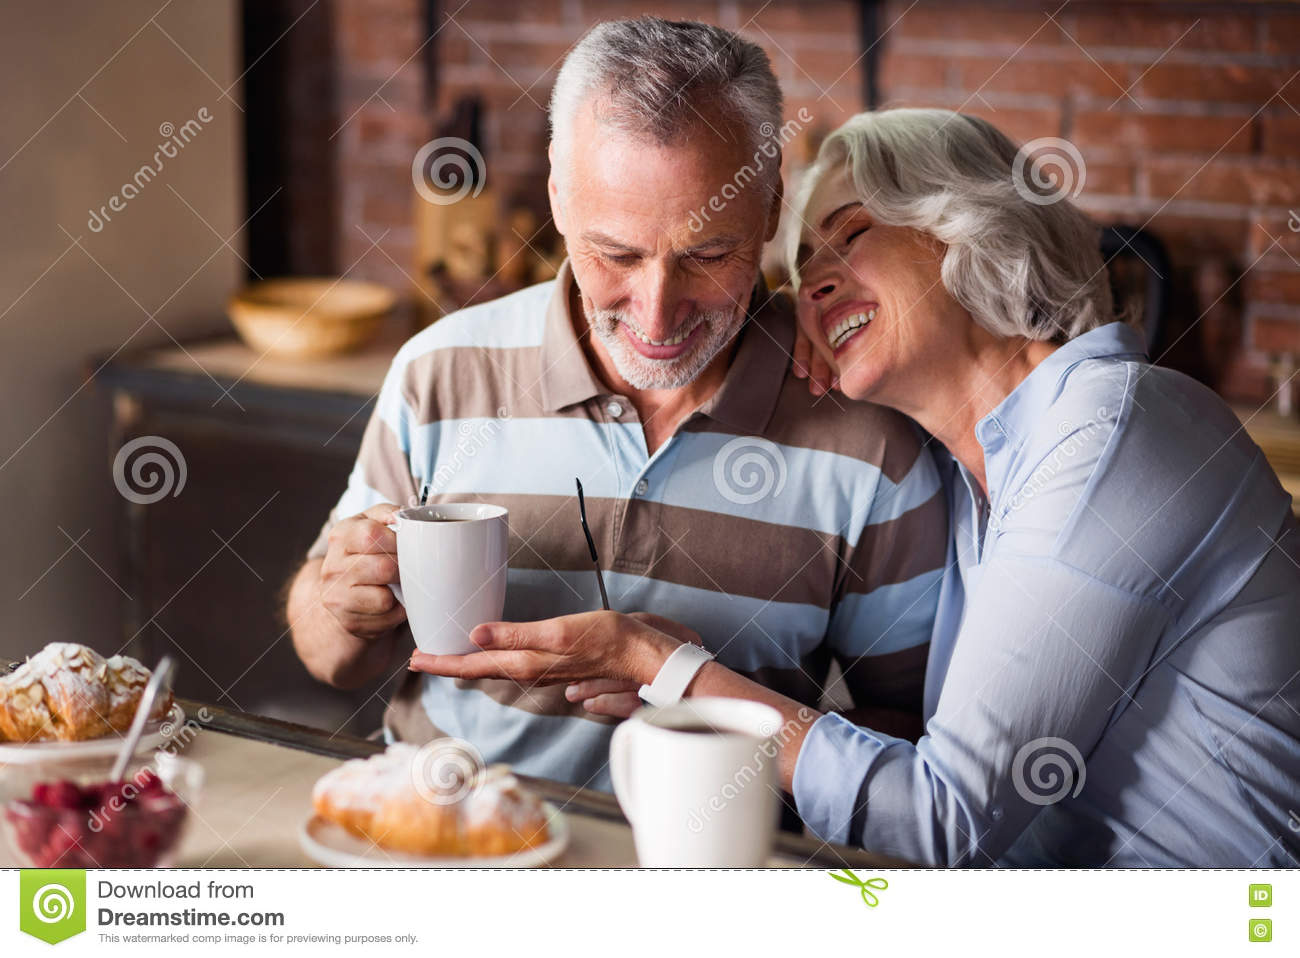 Smiling granny and grandpa holding white cups with tea and coffee during  breakfast